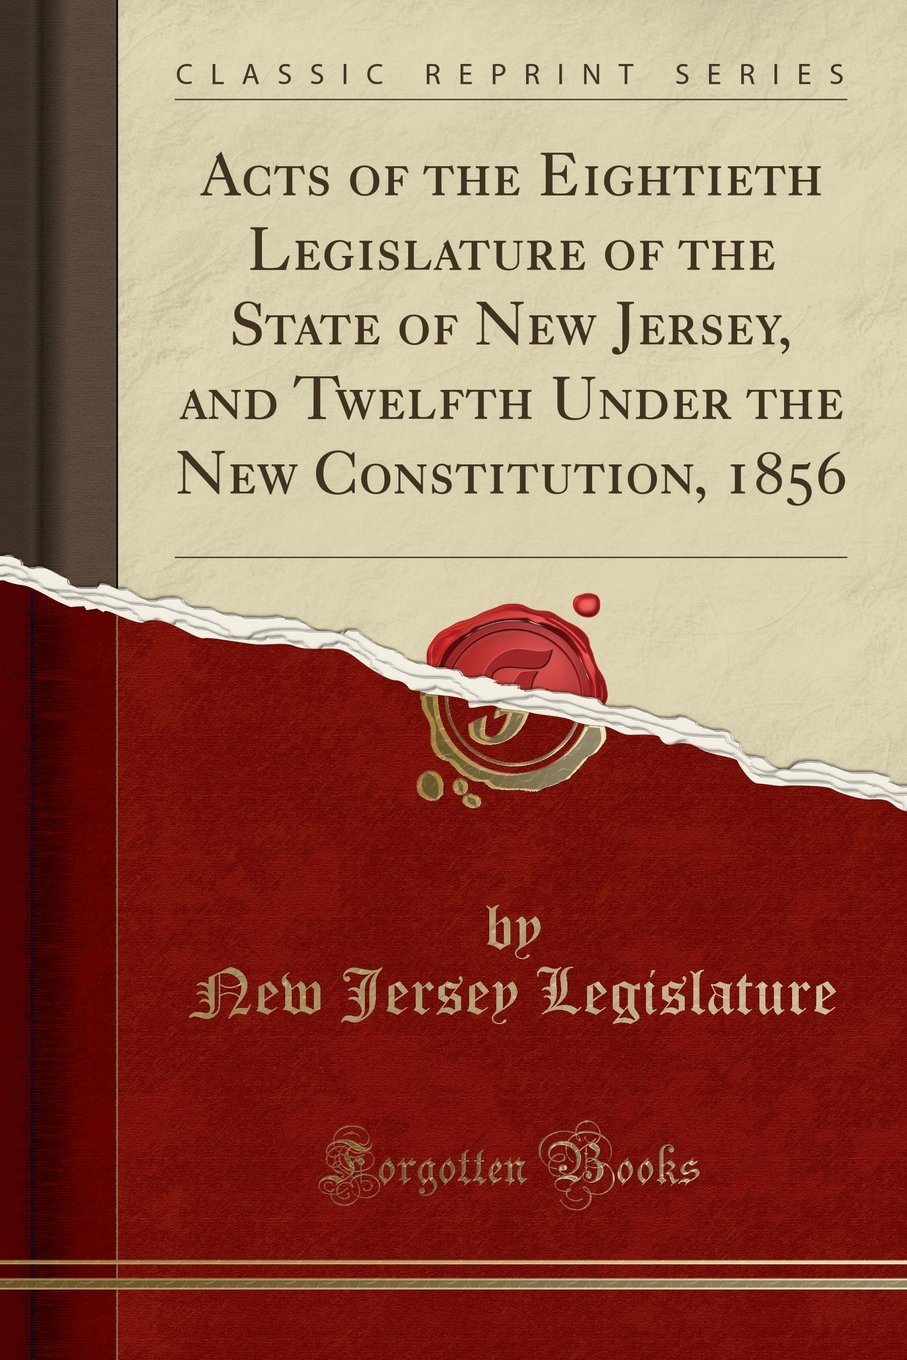 Read Online Acts of the Eightieth Legislature of the State of New Jersey, and Twelfth Under the New Constitution, 1856 (Classic Reprint) pdf